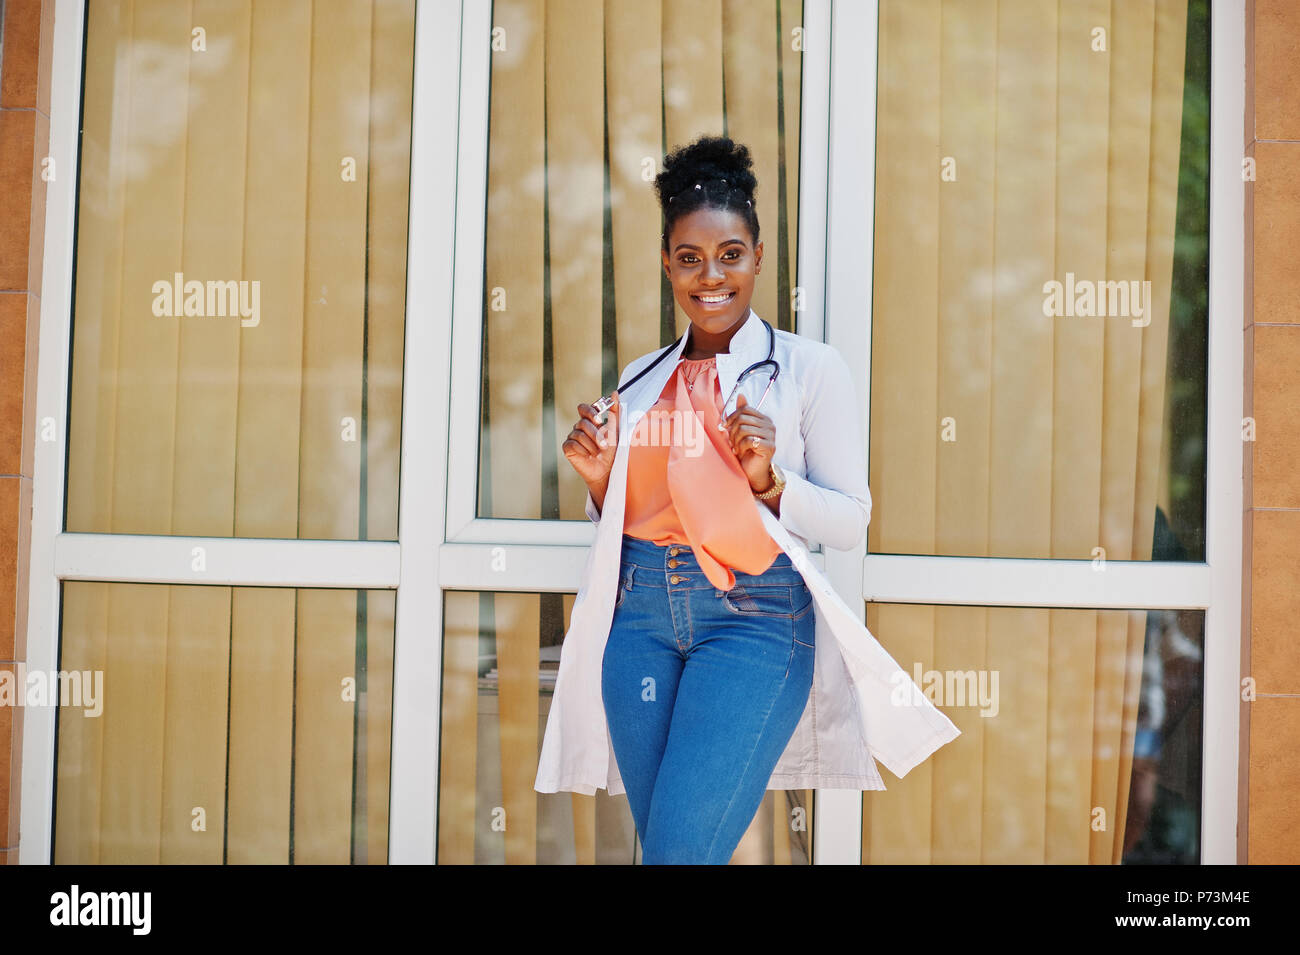 African american doctor female at lab coat with stethoscope posed outdoor against clinic. Stock Photo